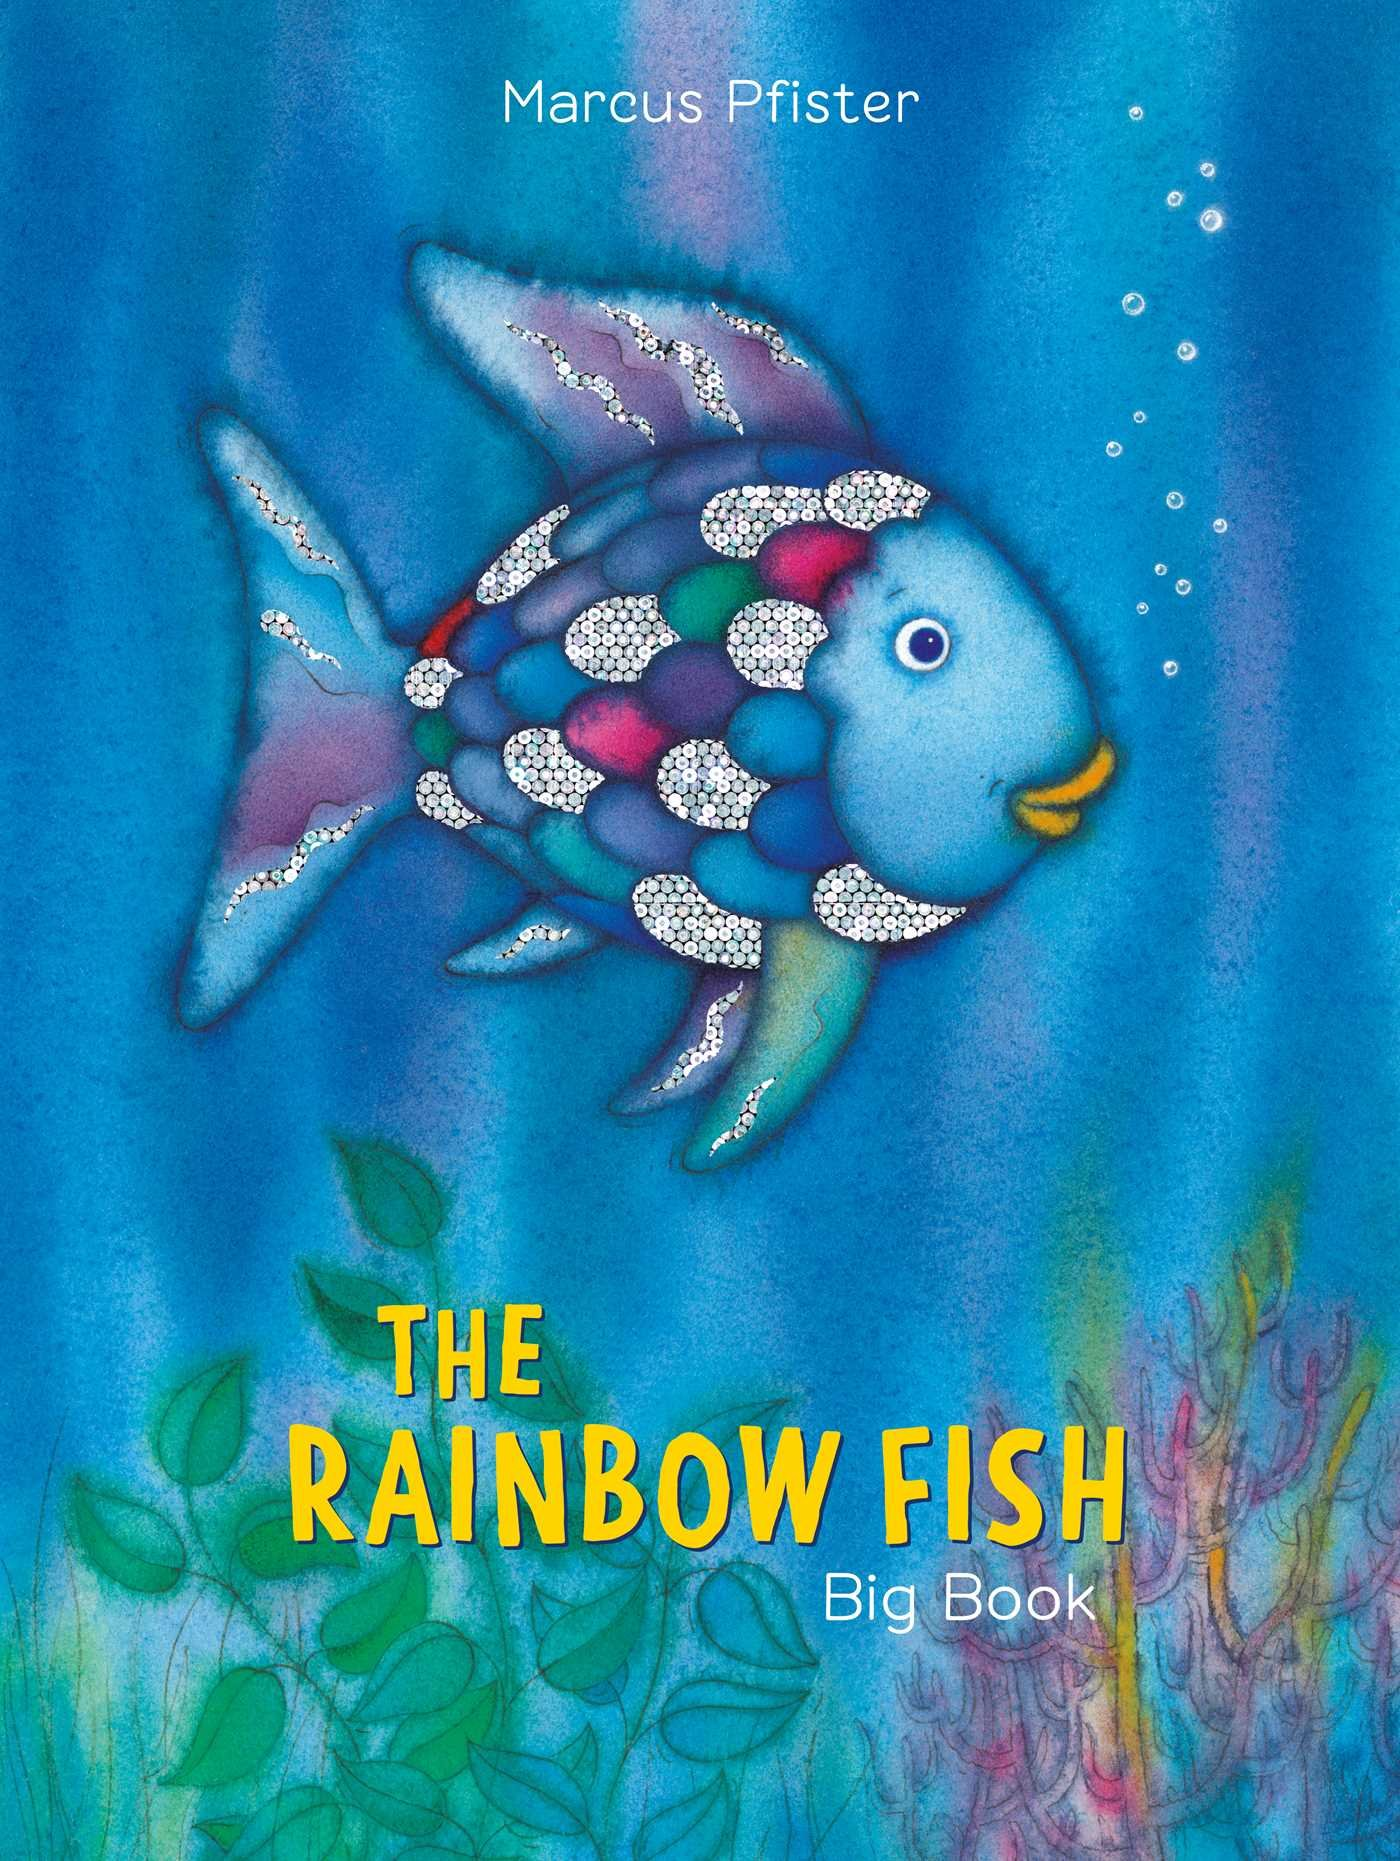 The Rainbow Fish Big Book: Amazon.co.uk: Pfister, Marcus: Books